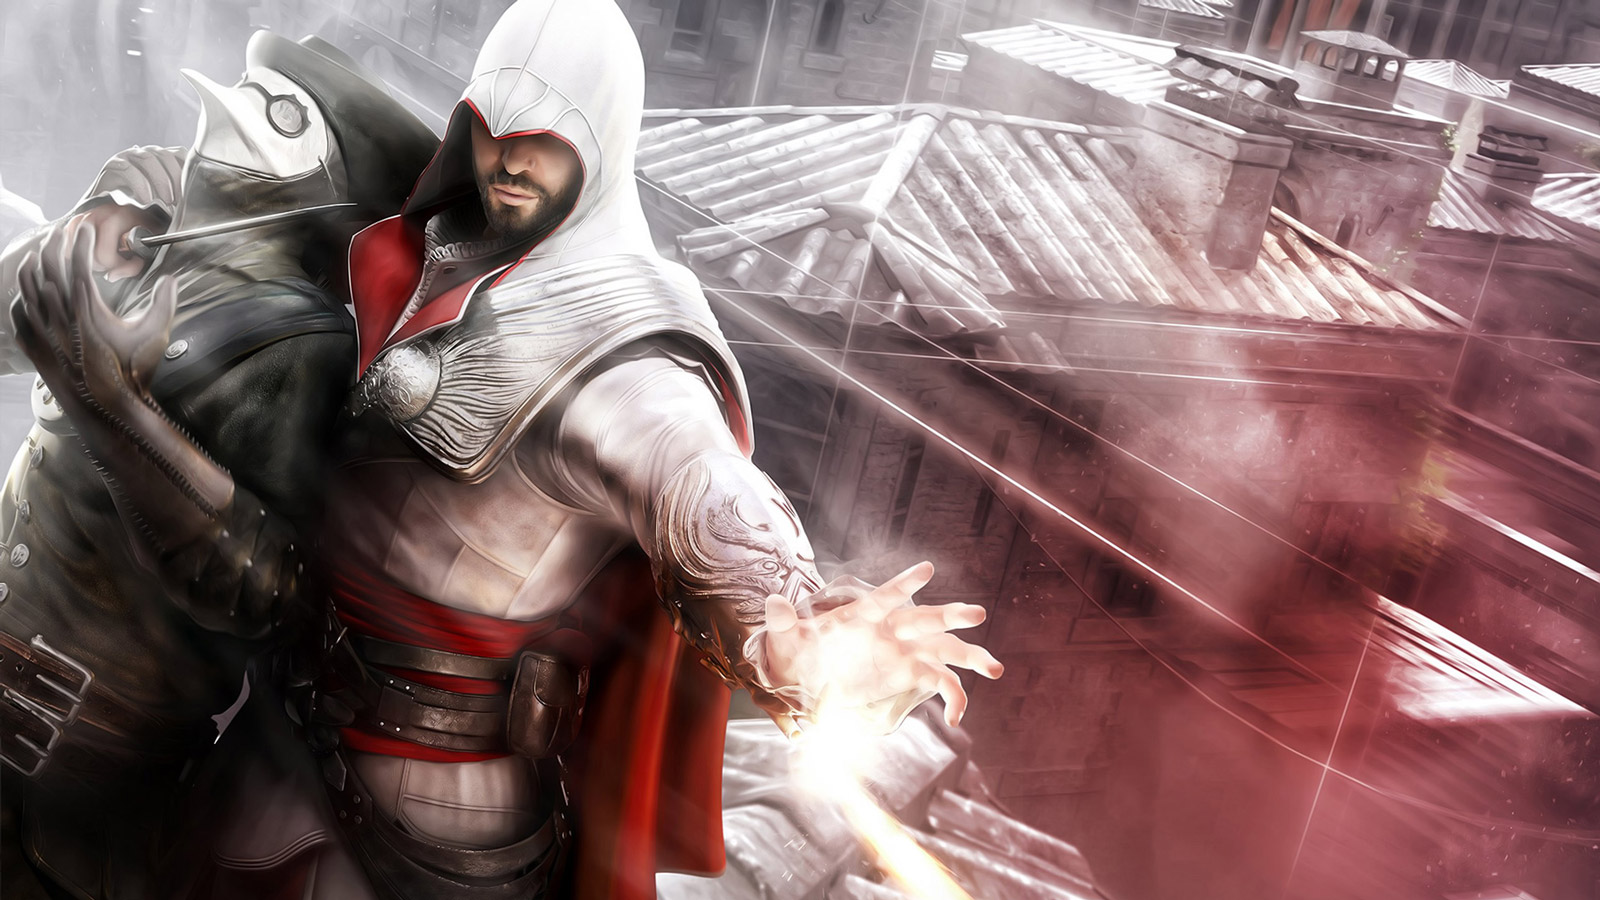 Assassin's Creed: Brotherhood Wallpaper in 1600x900